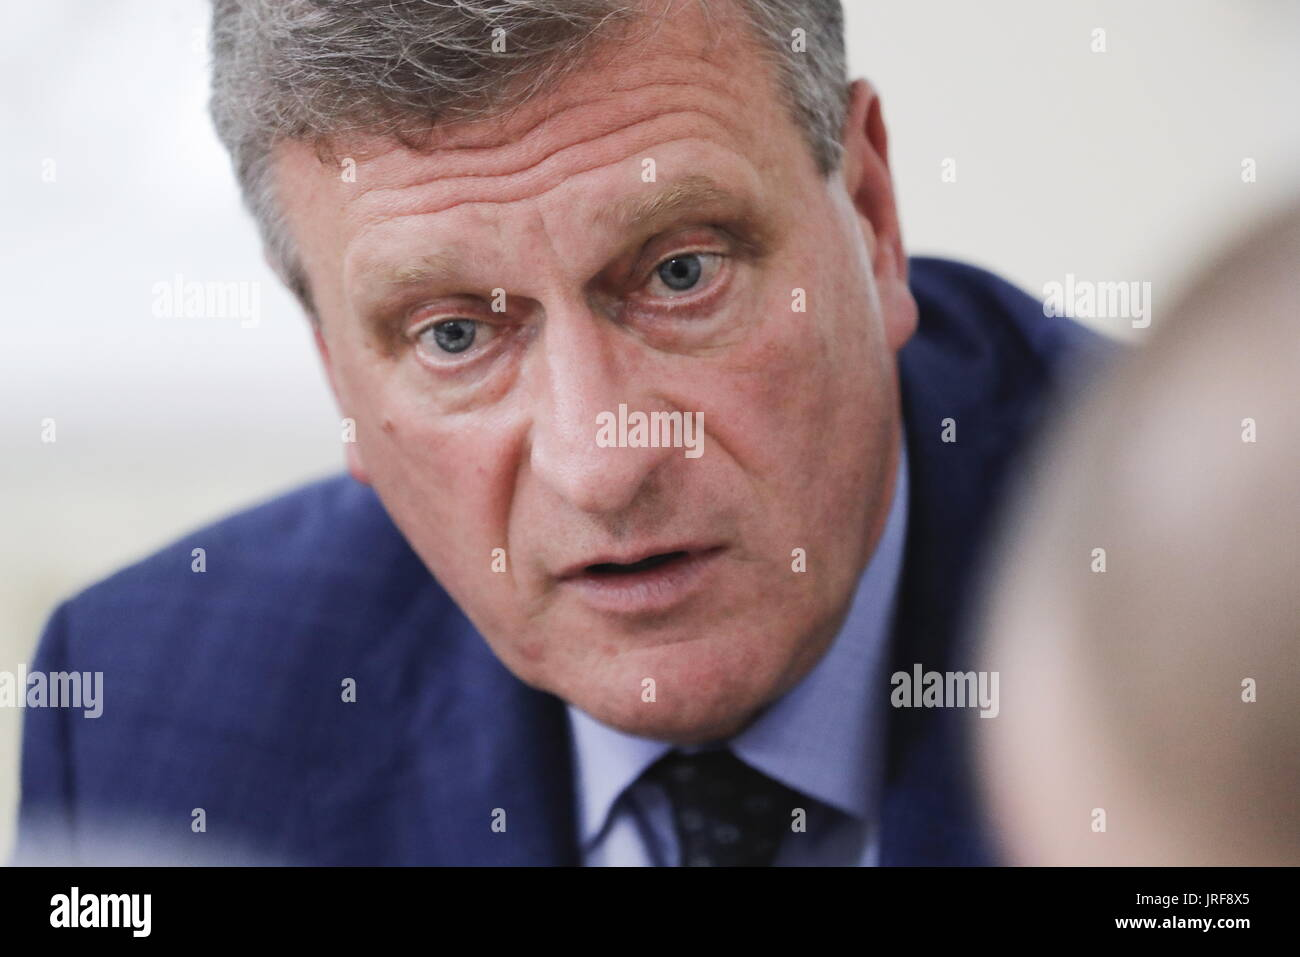 Kirov, Russia. 5th Aug, 2017. Acting Kirov Region Governor Igor Vasilyev attends a meeting of the Russian Presidential Council for the Local Self-Government Development. Credit: Mikhail Metzel/TASS/Alamy Live News - Stock Image